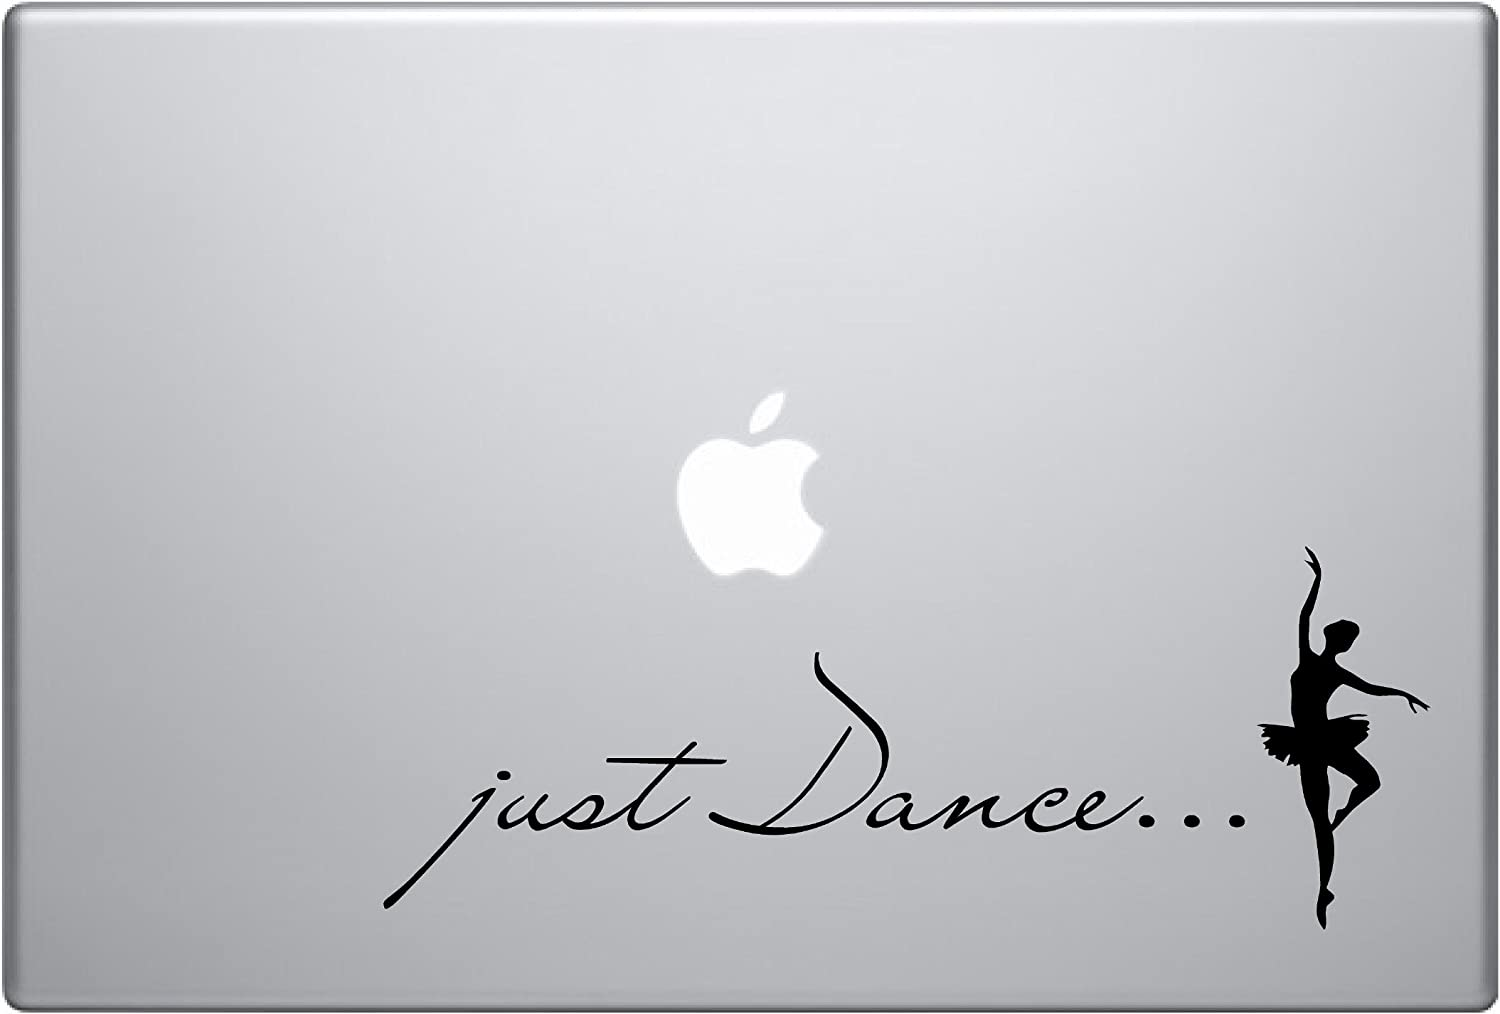 Just Dance Text Ballerina Dancing Life Is Beautiful Black Symbol Iphone Silhouette Decal Humor Macbook Symbol Iphone Disney Apple Ipad Decal Skin Sticker Laptop